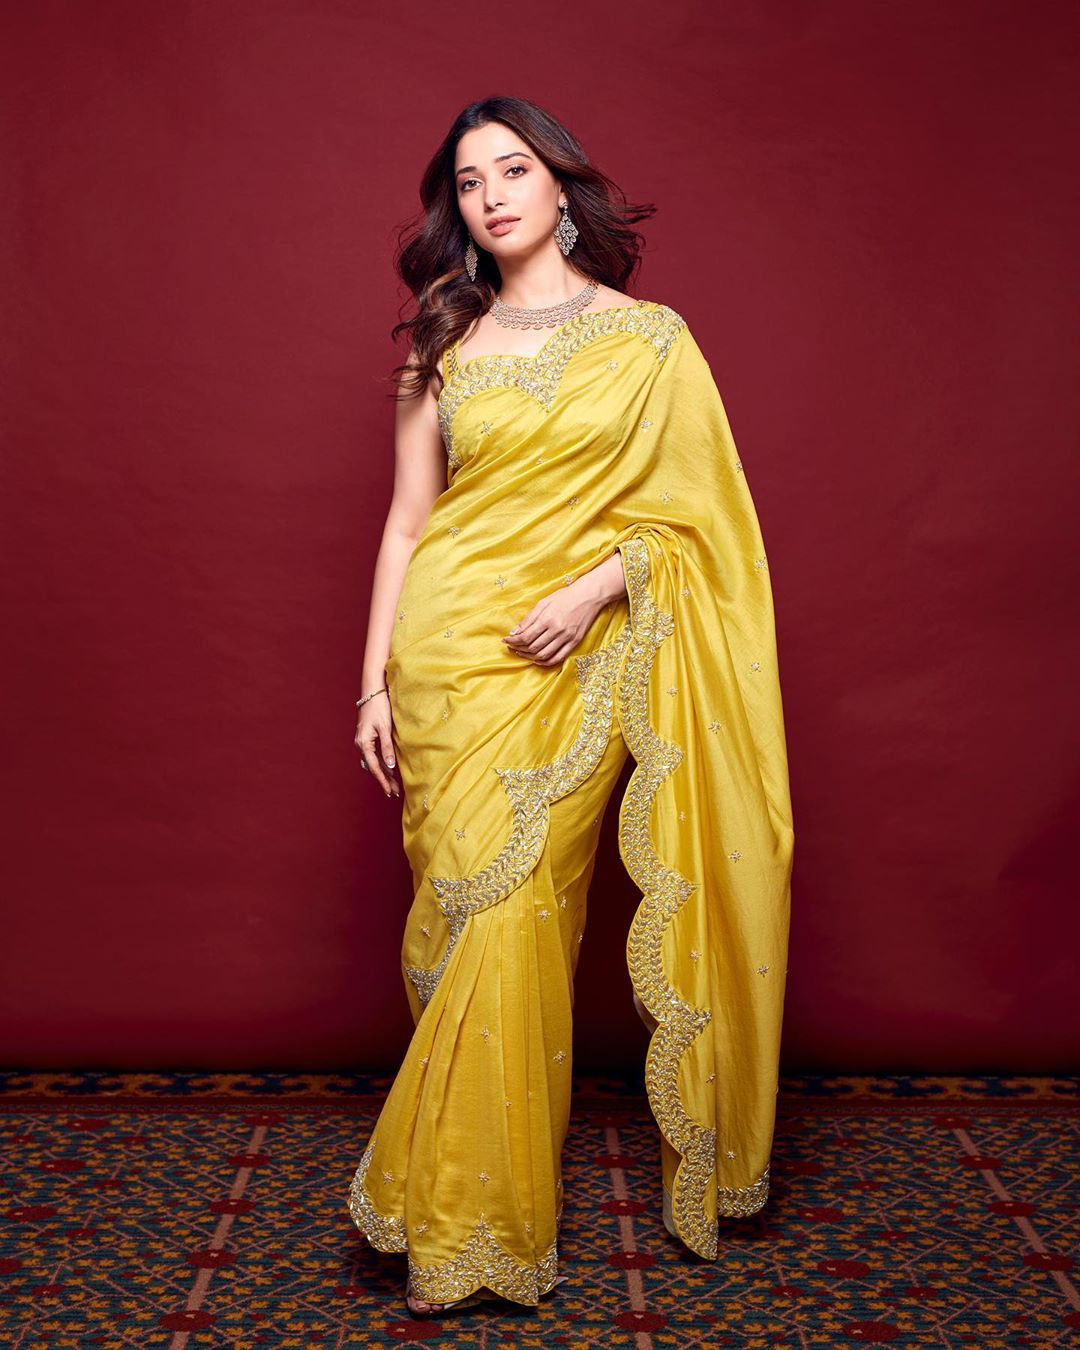 Actress Tamannaah Bhatia latest photo in a yellow saree